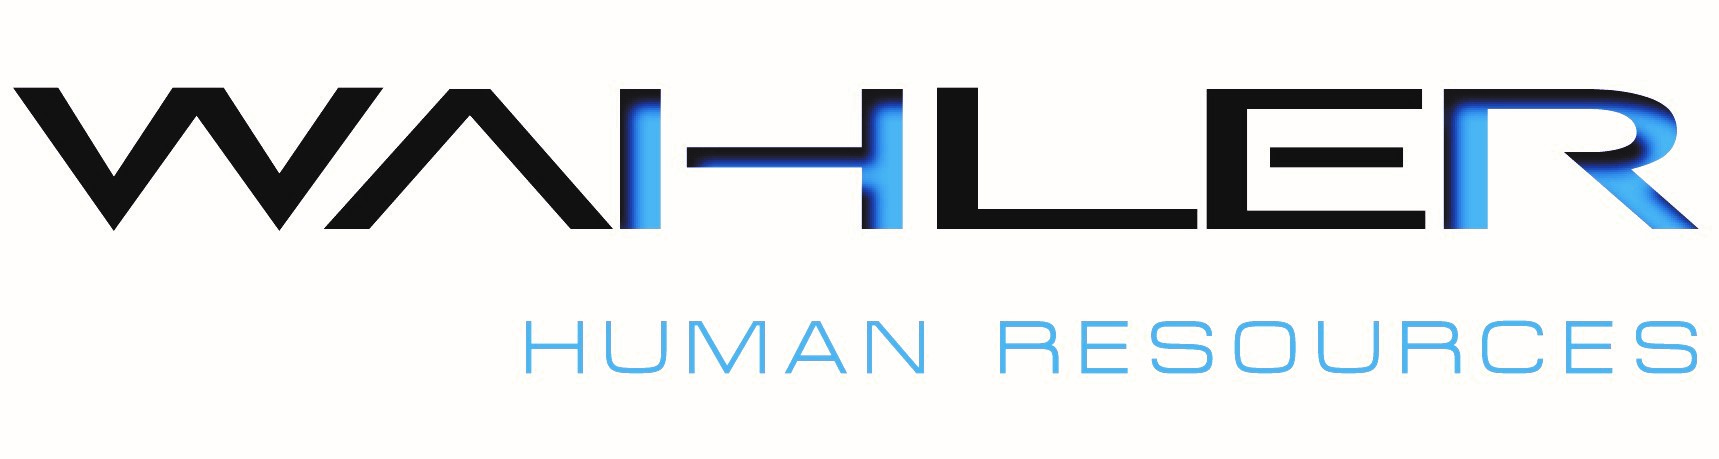 Wahler human resources